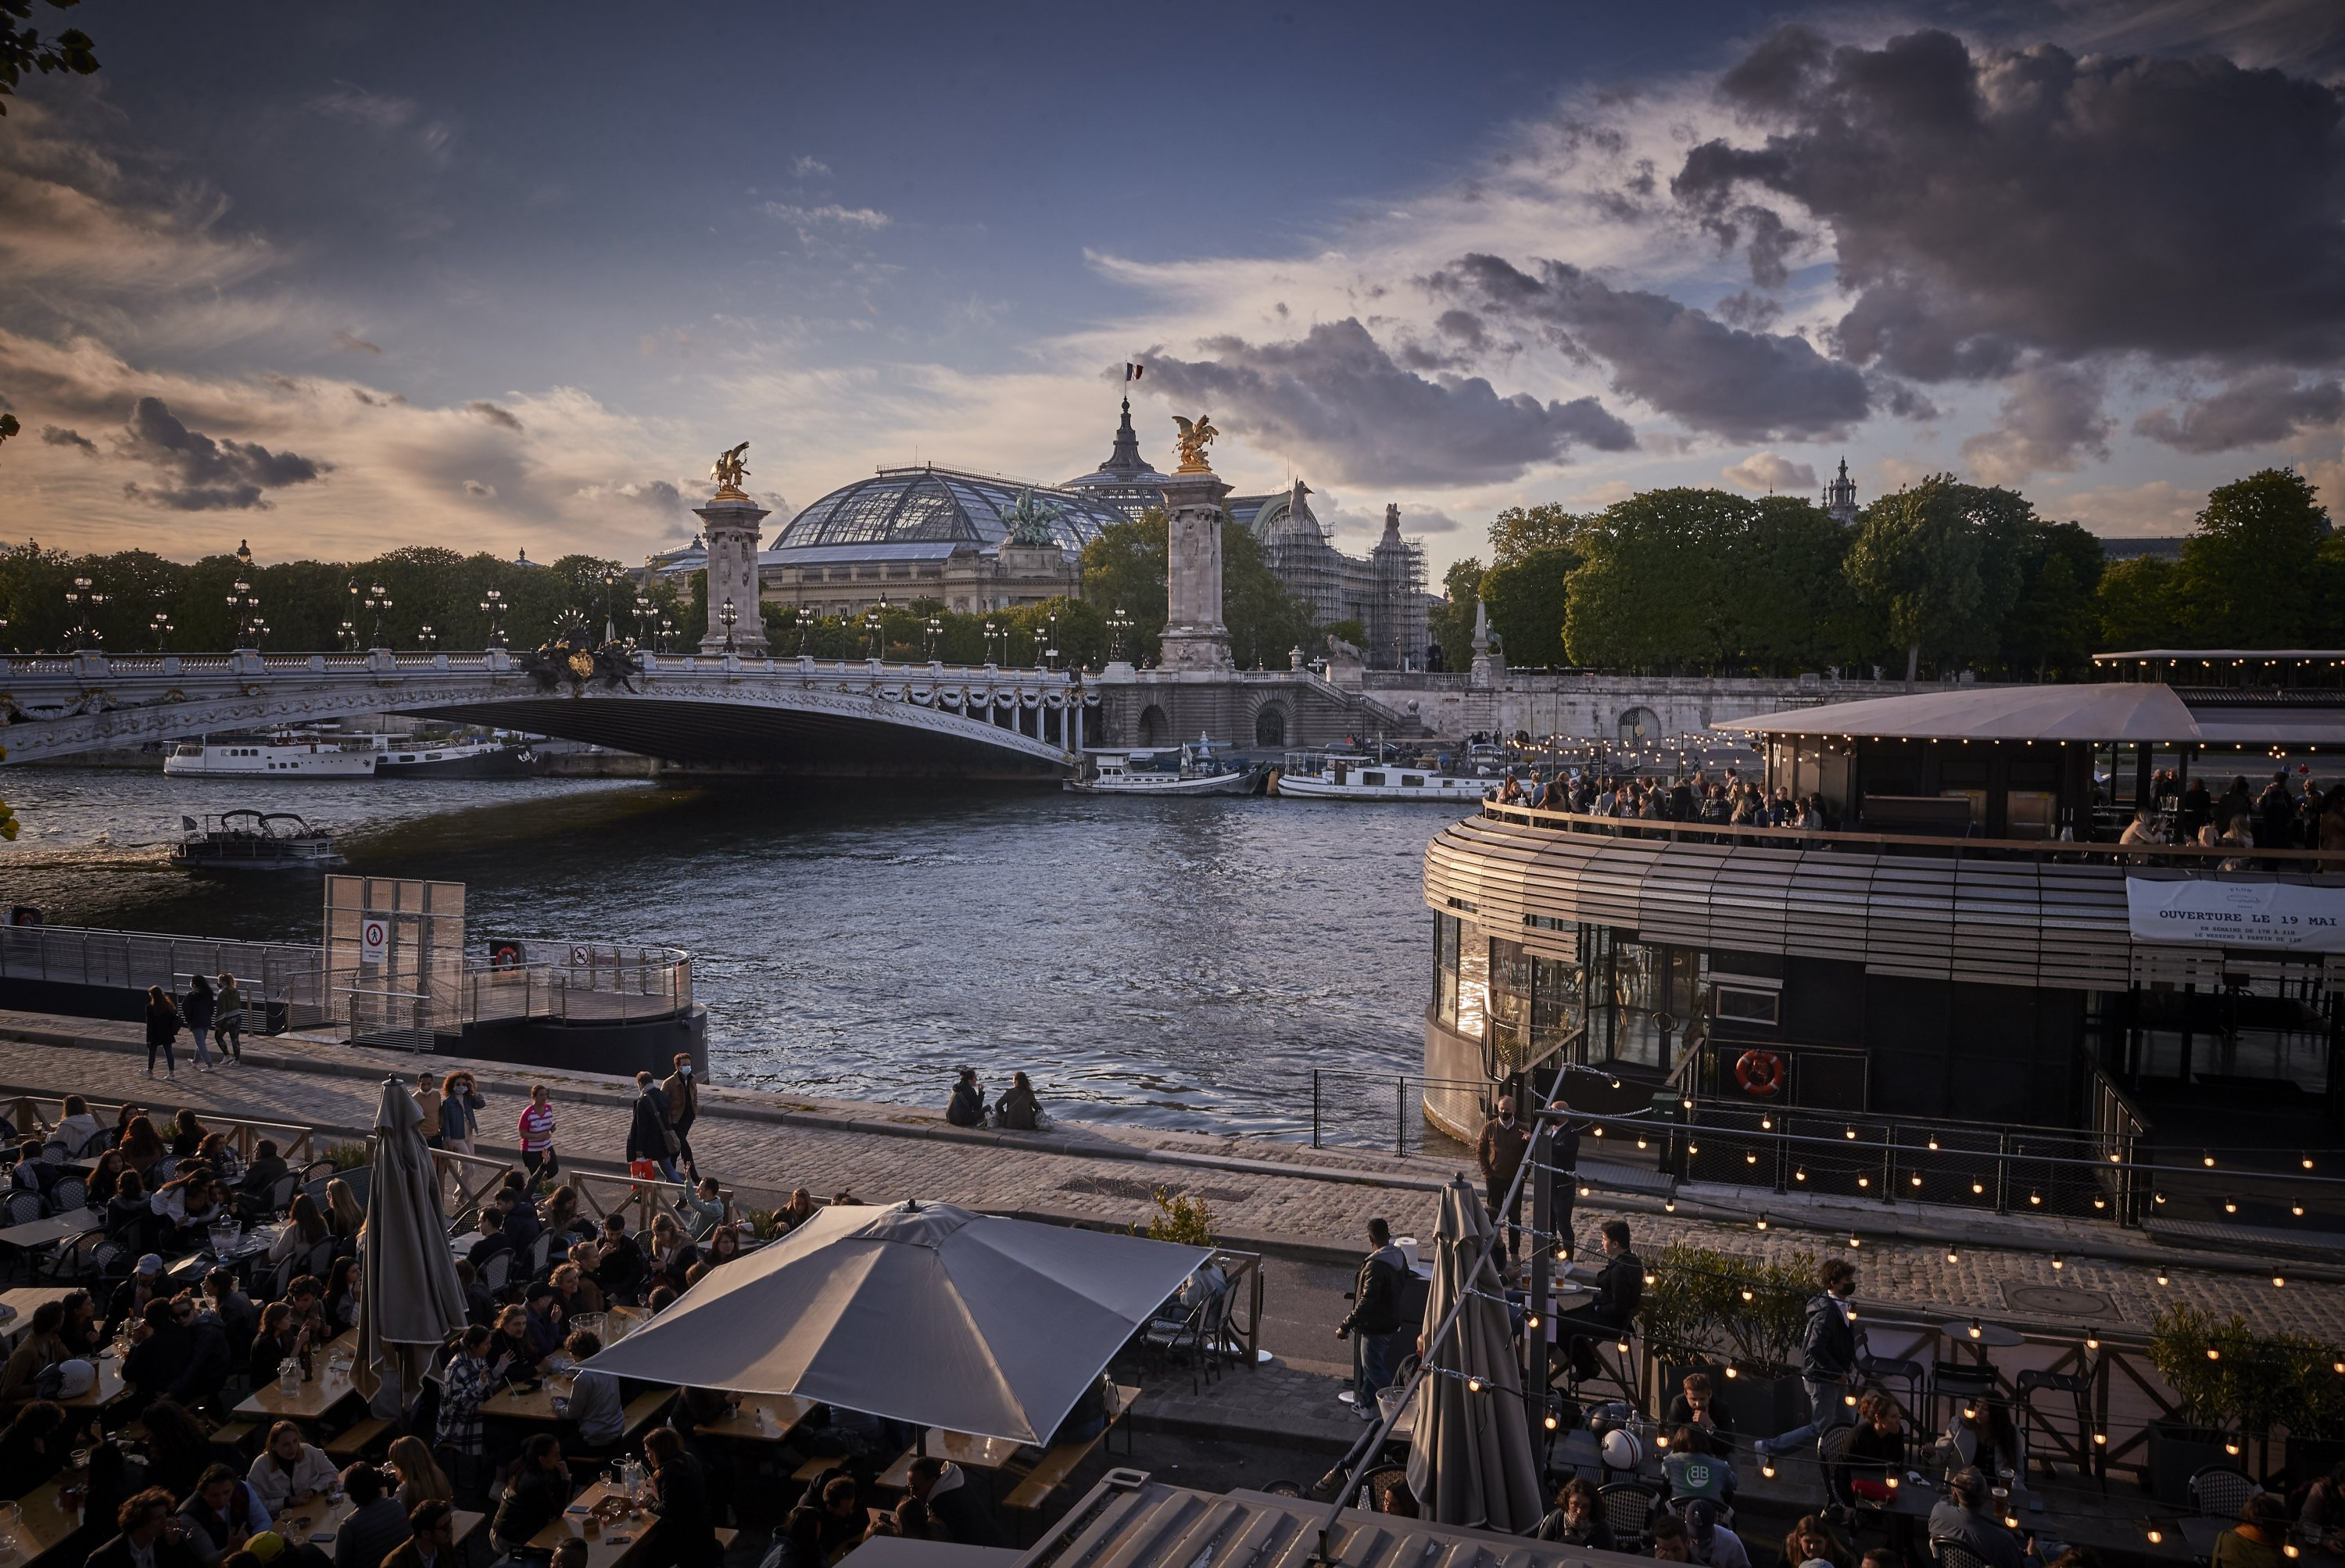 People enjoy the evening sun on the river Seine as cafes and restaurants across France reopen for the first time in over six months, after the coronavirus measures, Paris, France, May 19, 2021. (Photo by Getty Images)